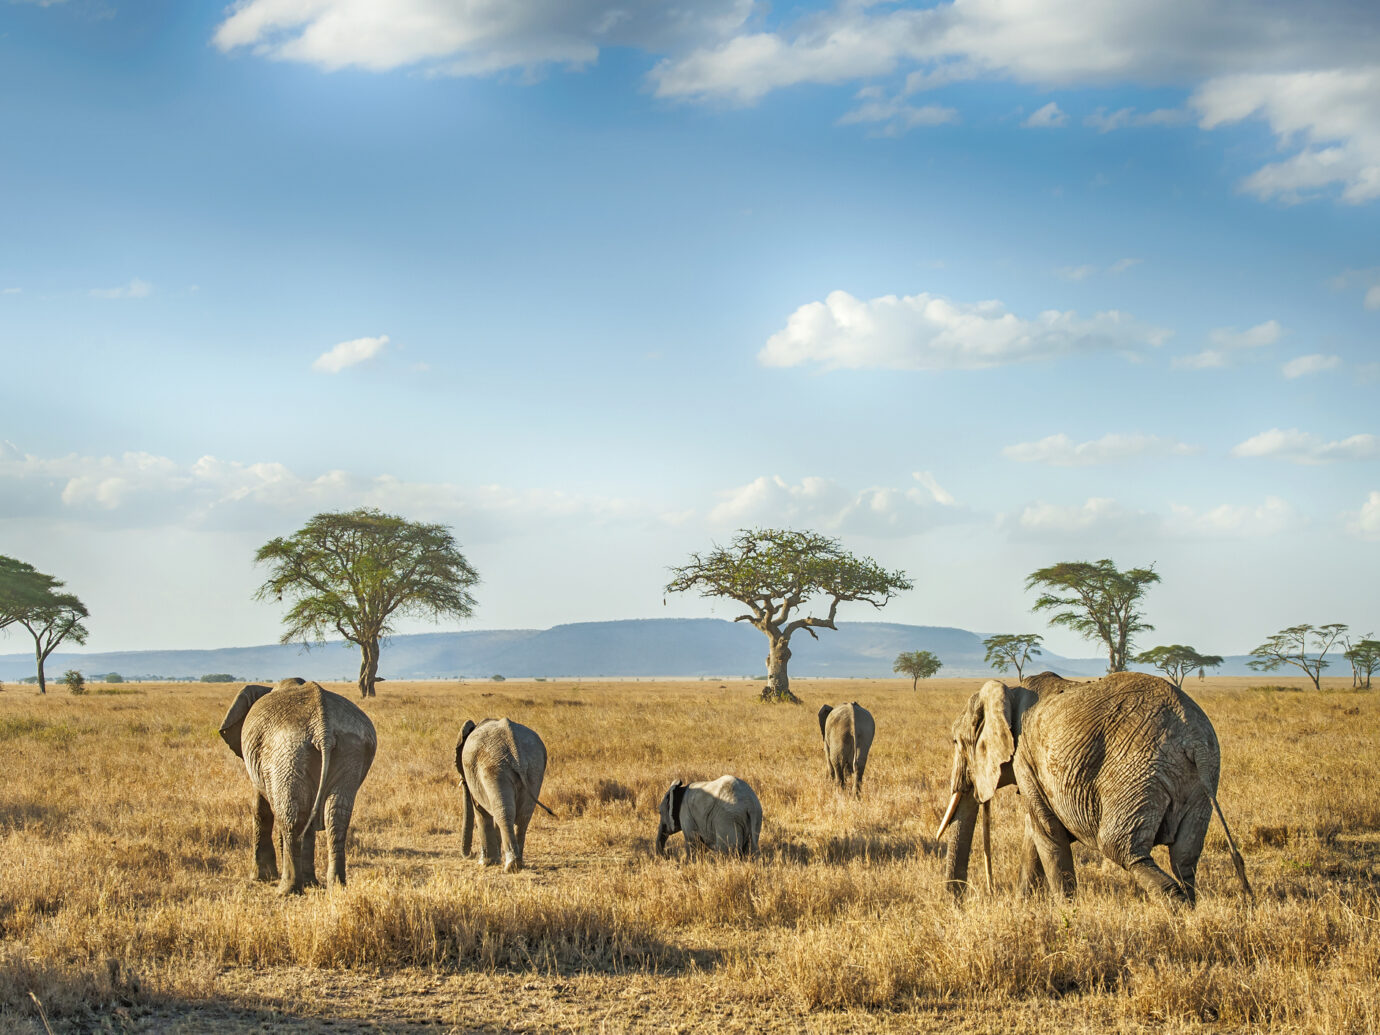 'A small group of African Elephants in different ages is moving in the plains of Serengeti.Location: Serengeti National Park, Tanzania. Shot in wildlife.'